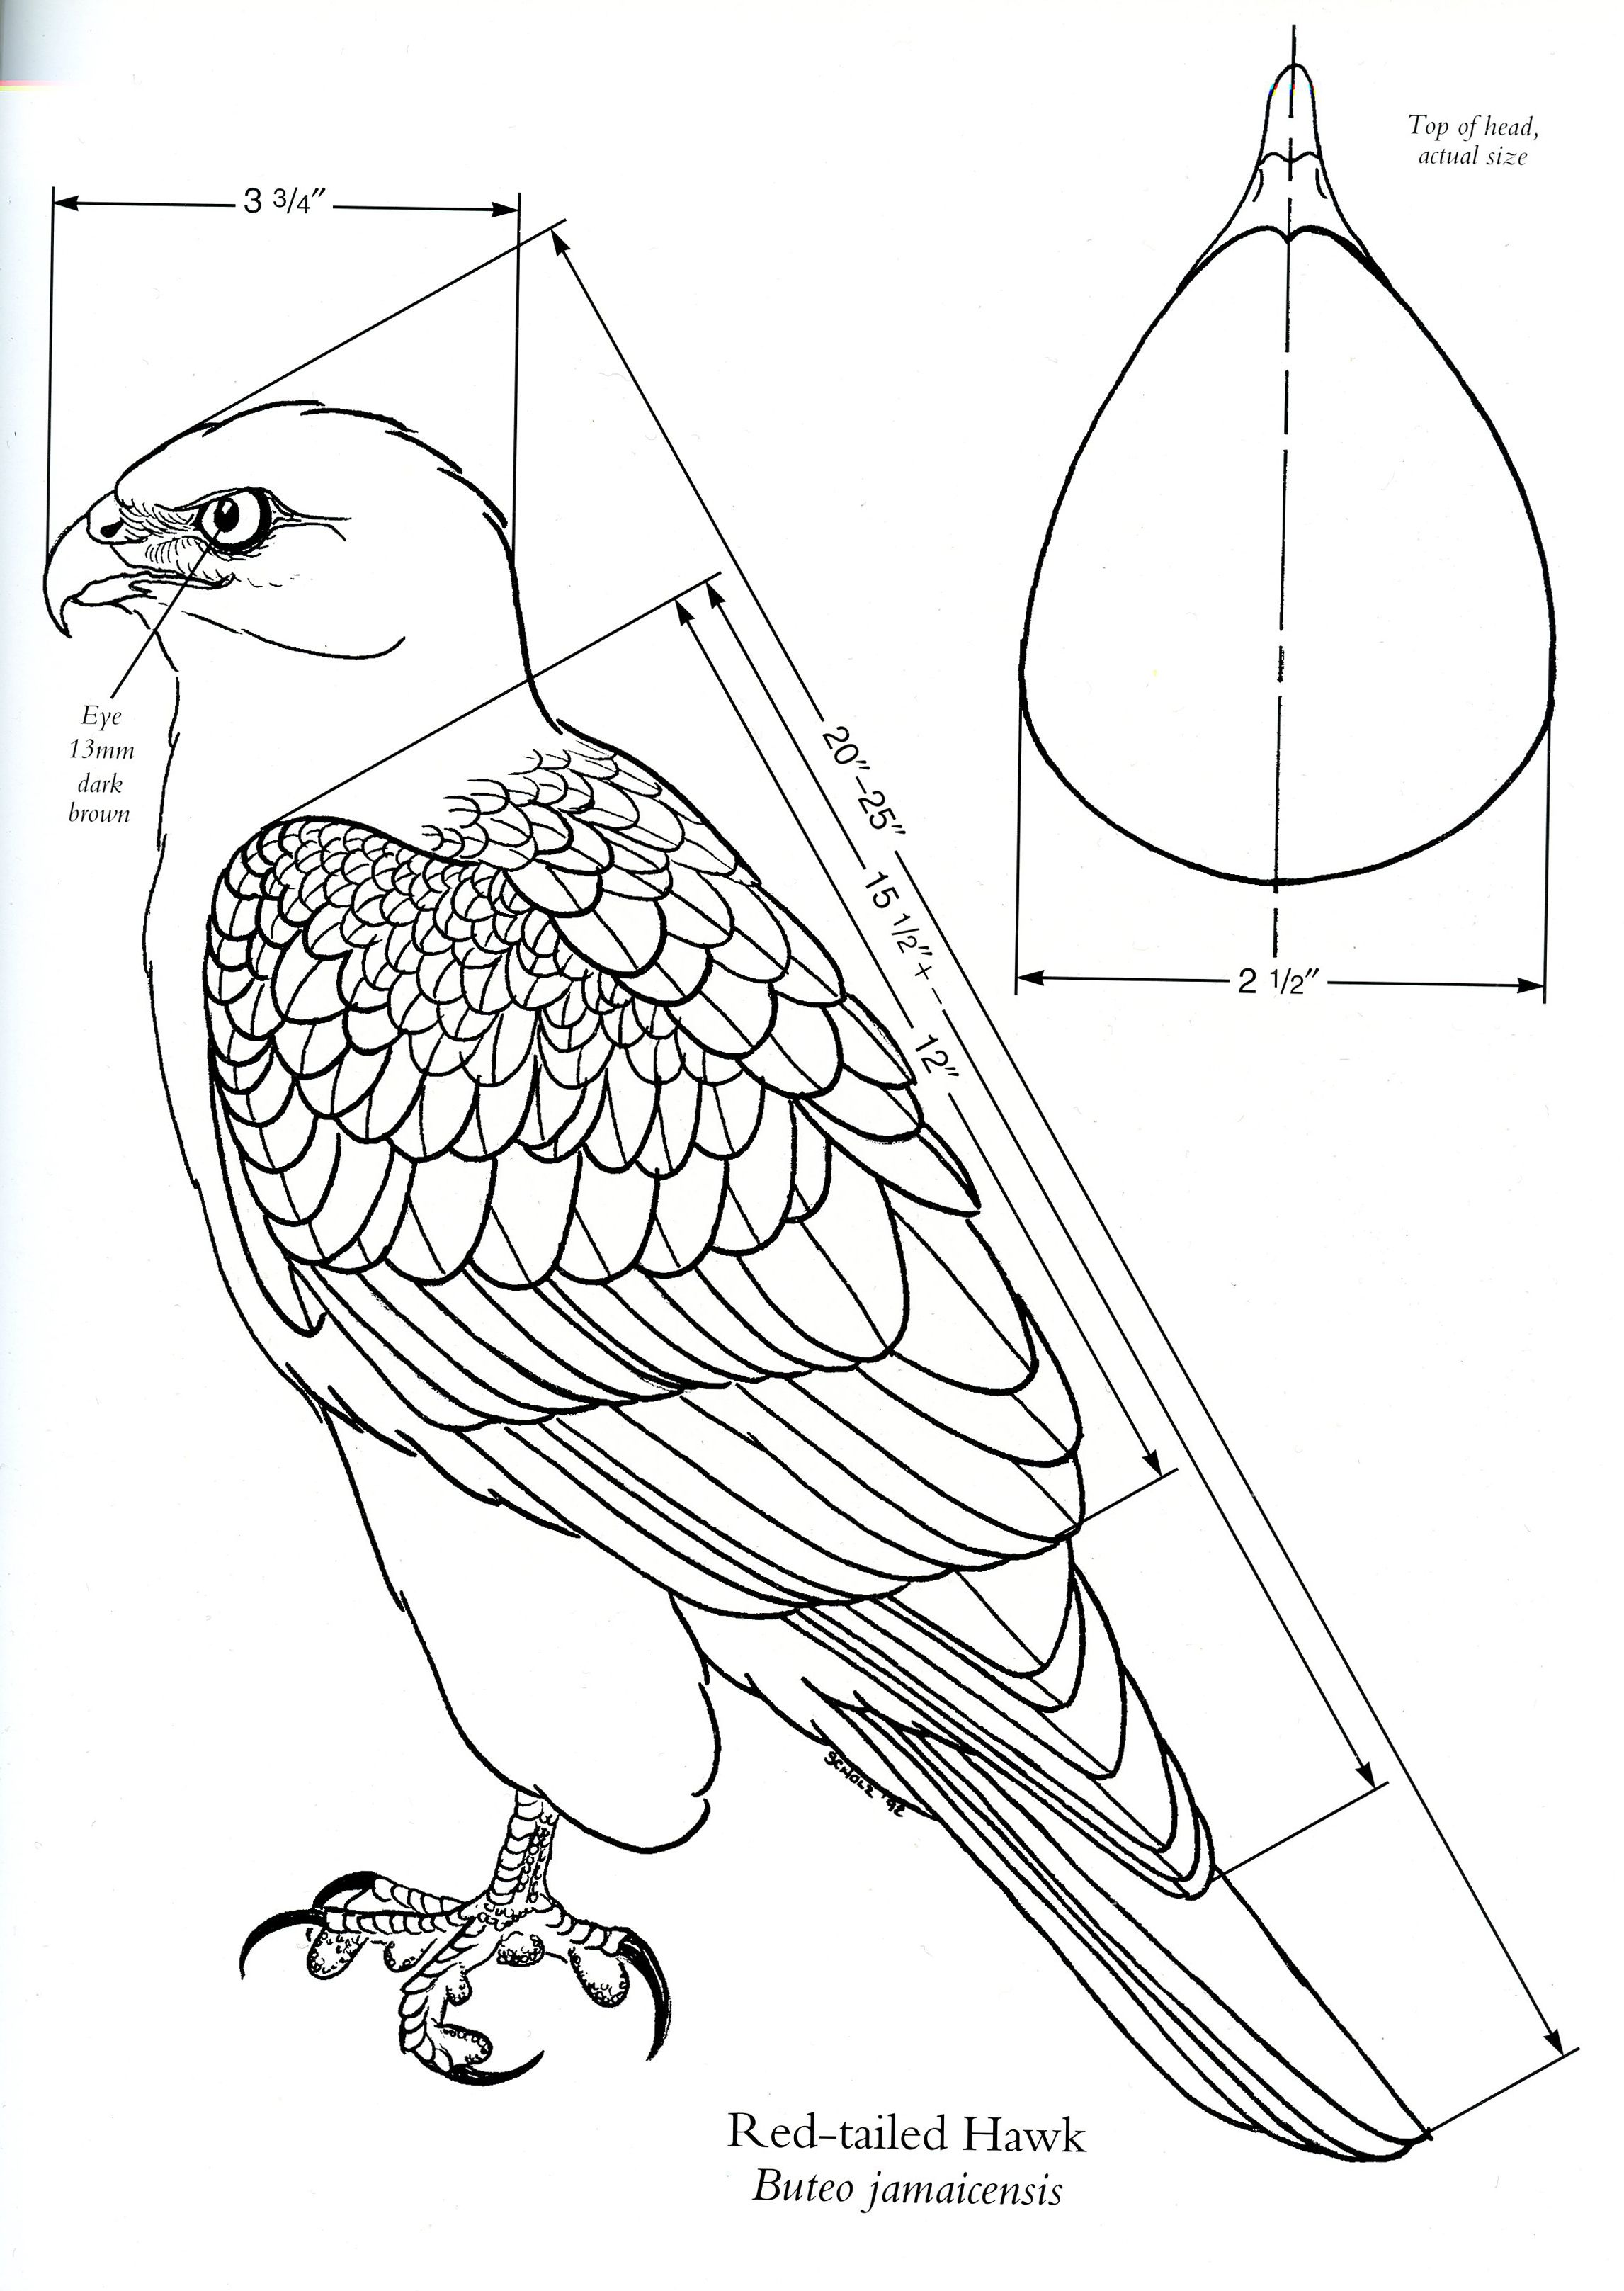 hight resolution of diagram of a red tailed hawk source birds of prey by floyd scholz diagram wild turkey diagram of hawk